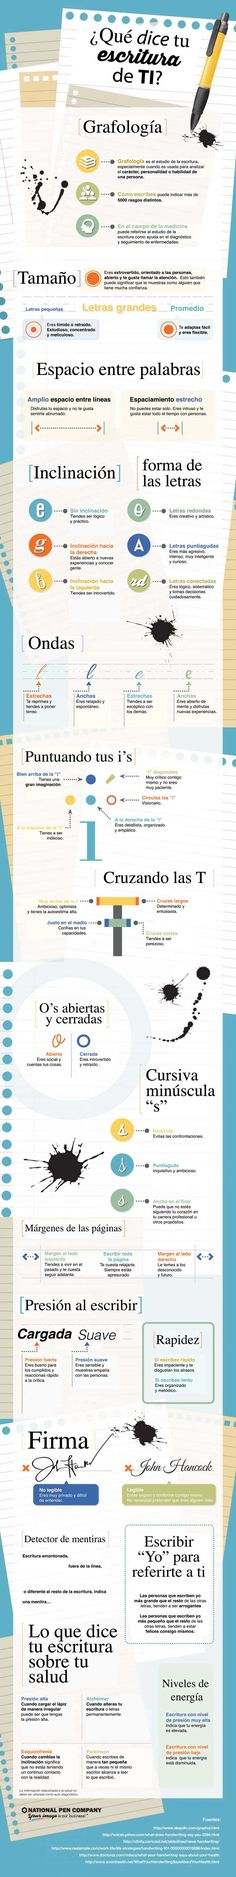 ¿Qué dice tu escritura de ti? Napping At Work, Bakery Business, Business Tips, What Is Seo, Power Nap, Personal Wellness, Productivity Hacks, Self Development, Personal Development